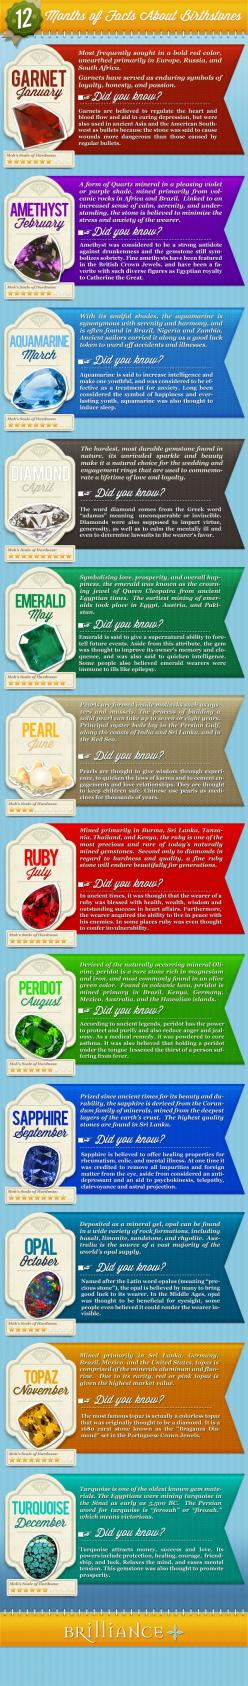 (Beautifully done. As a designer, I was surprised to find an orphan in the text on the month of May, because it is so well designed.) Birthstones by Month Infographic: Gemstones, 12 Months, Month Infographic, Crystals Stones, Emerald, Birthstone Infograph